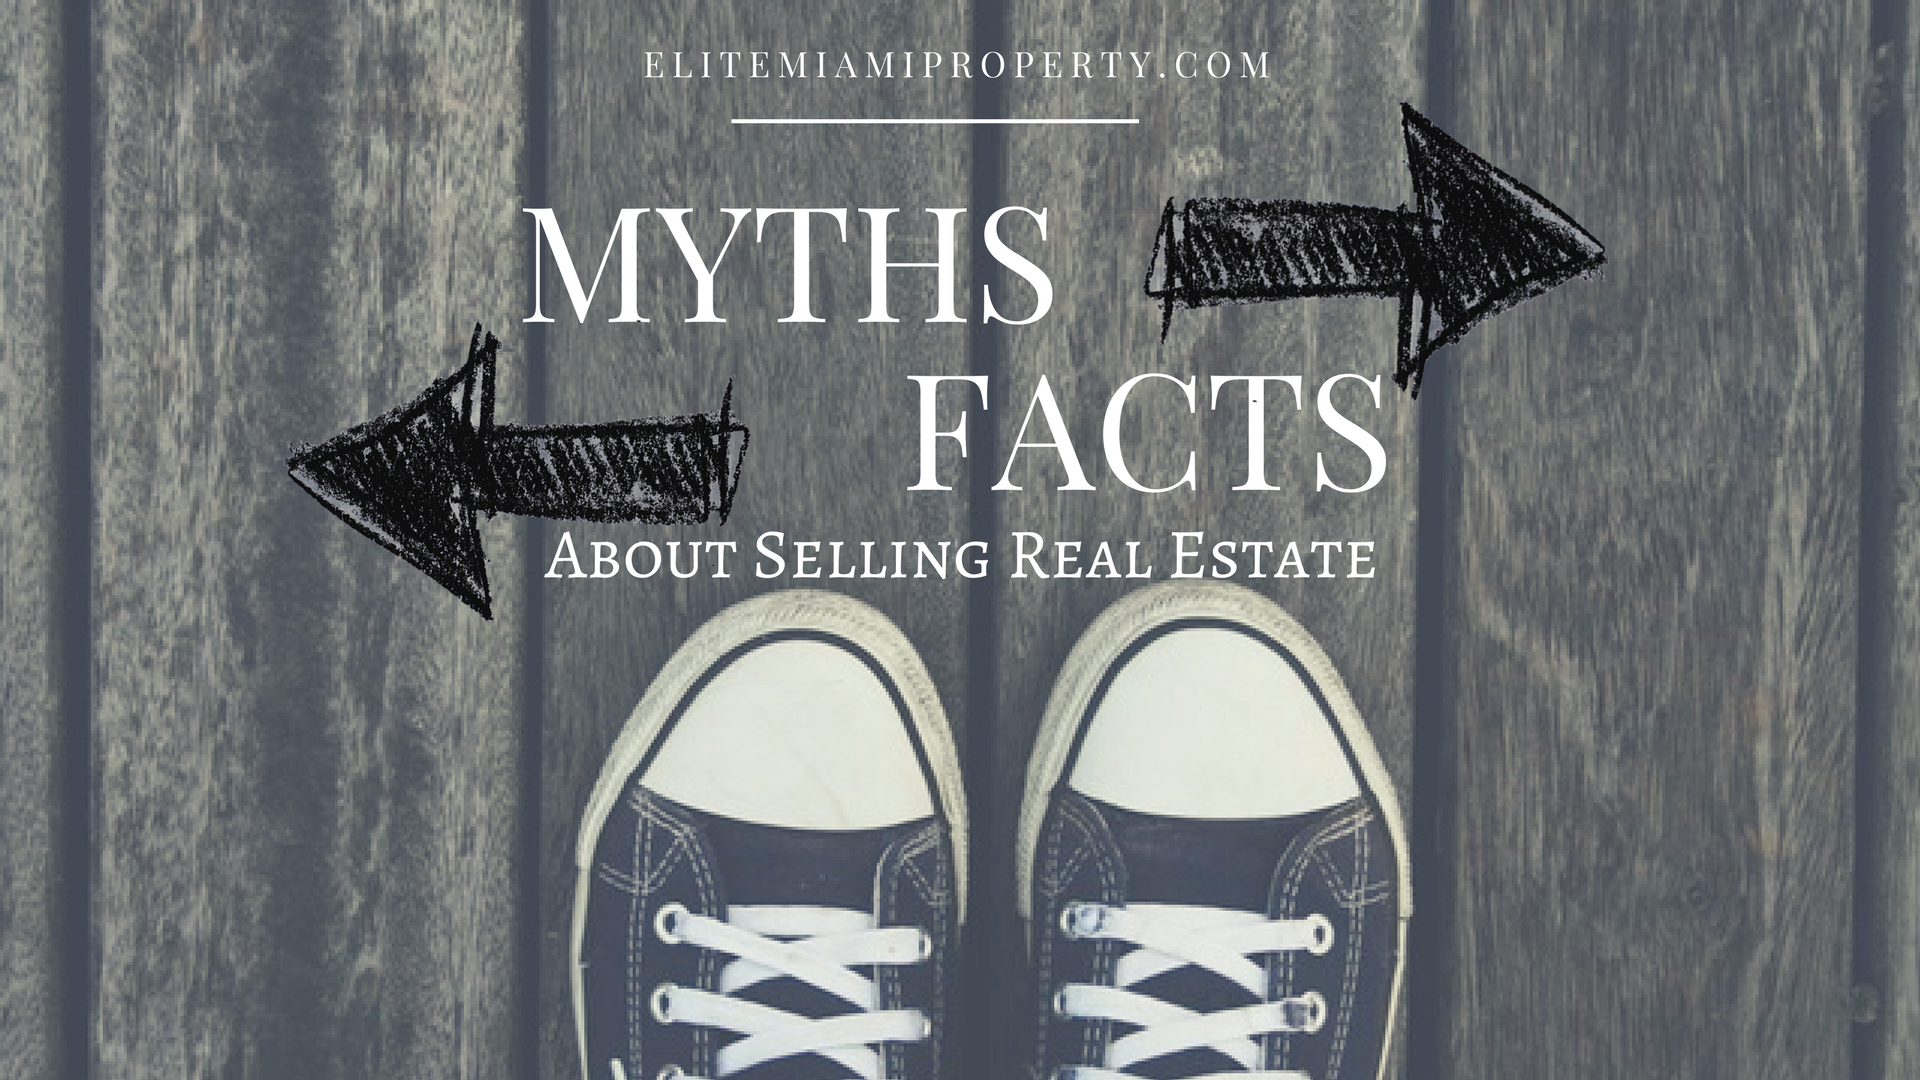 Myths about selling real estate